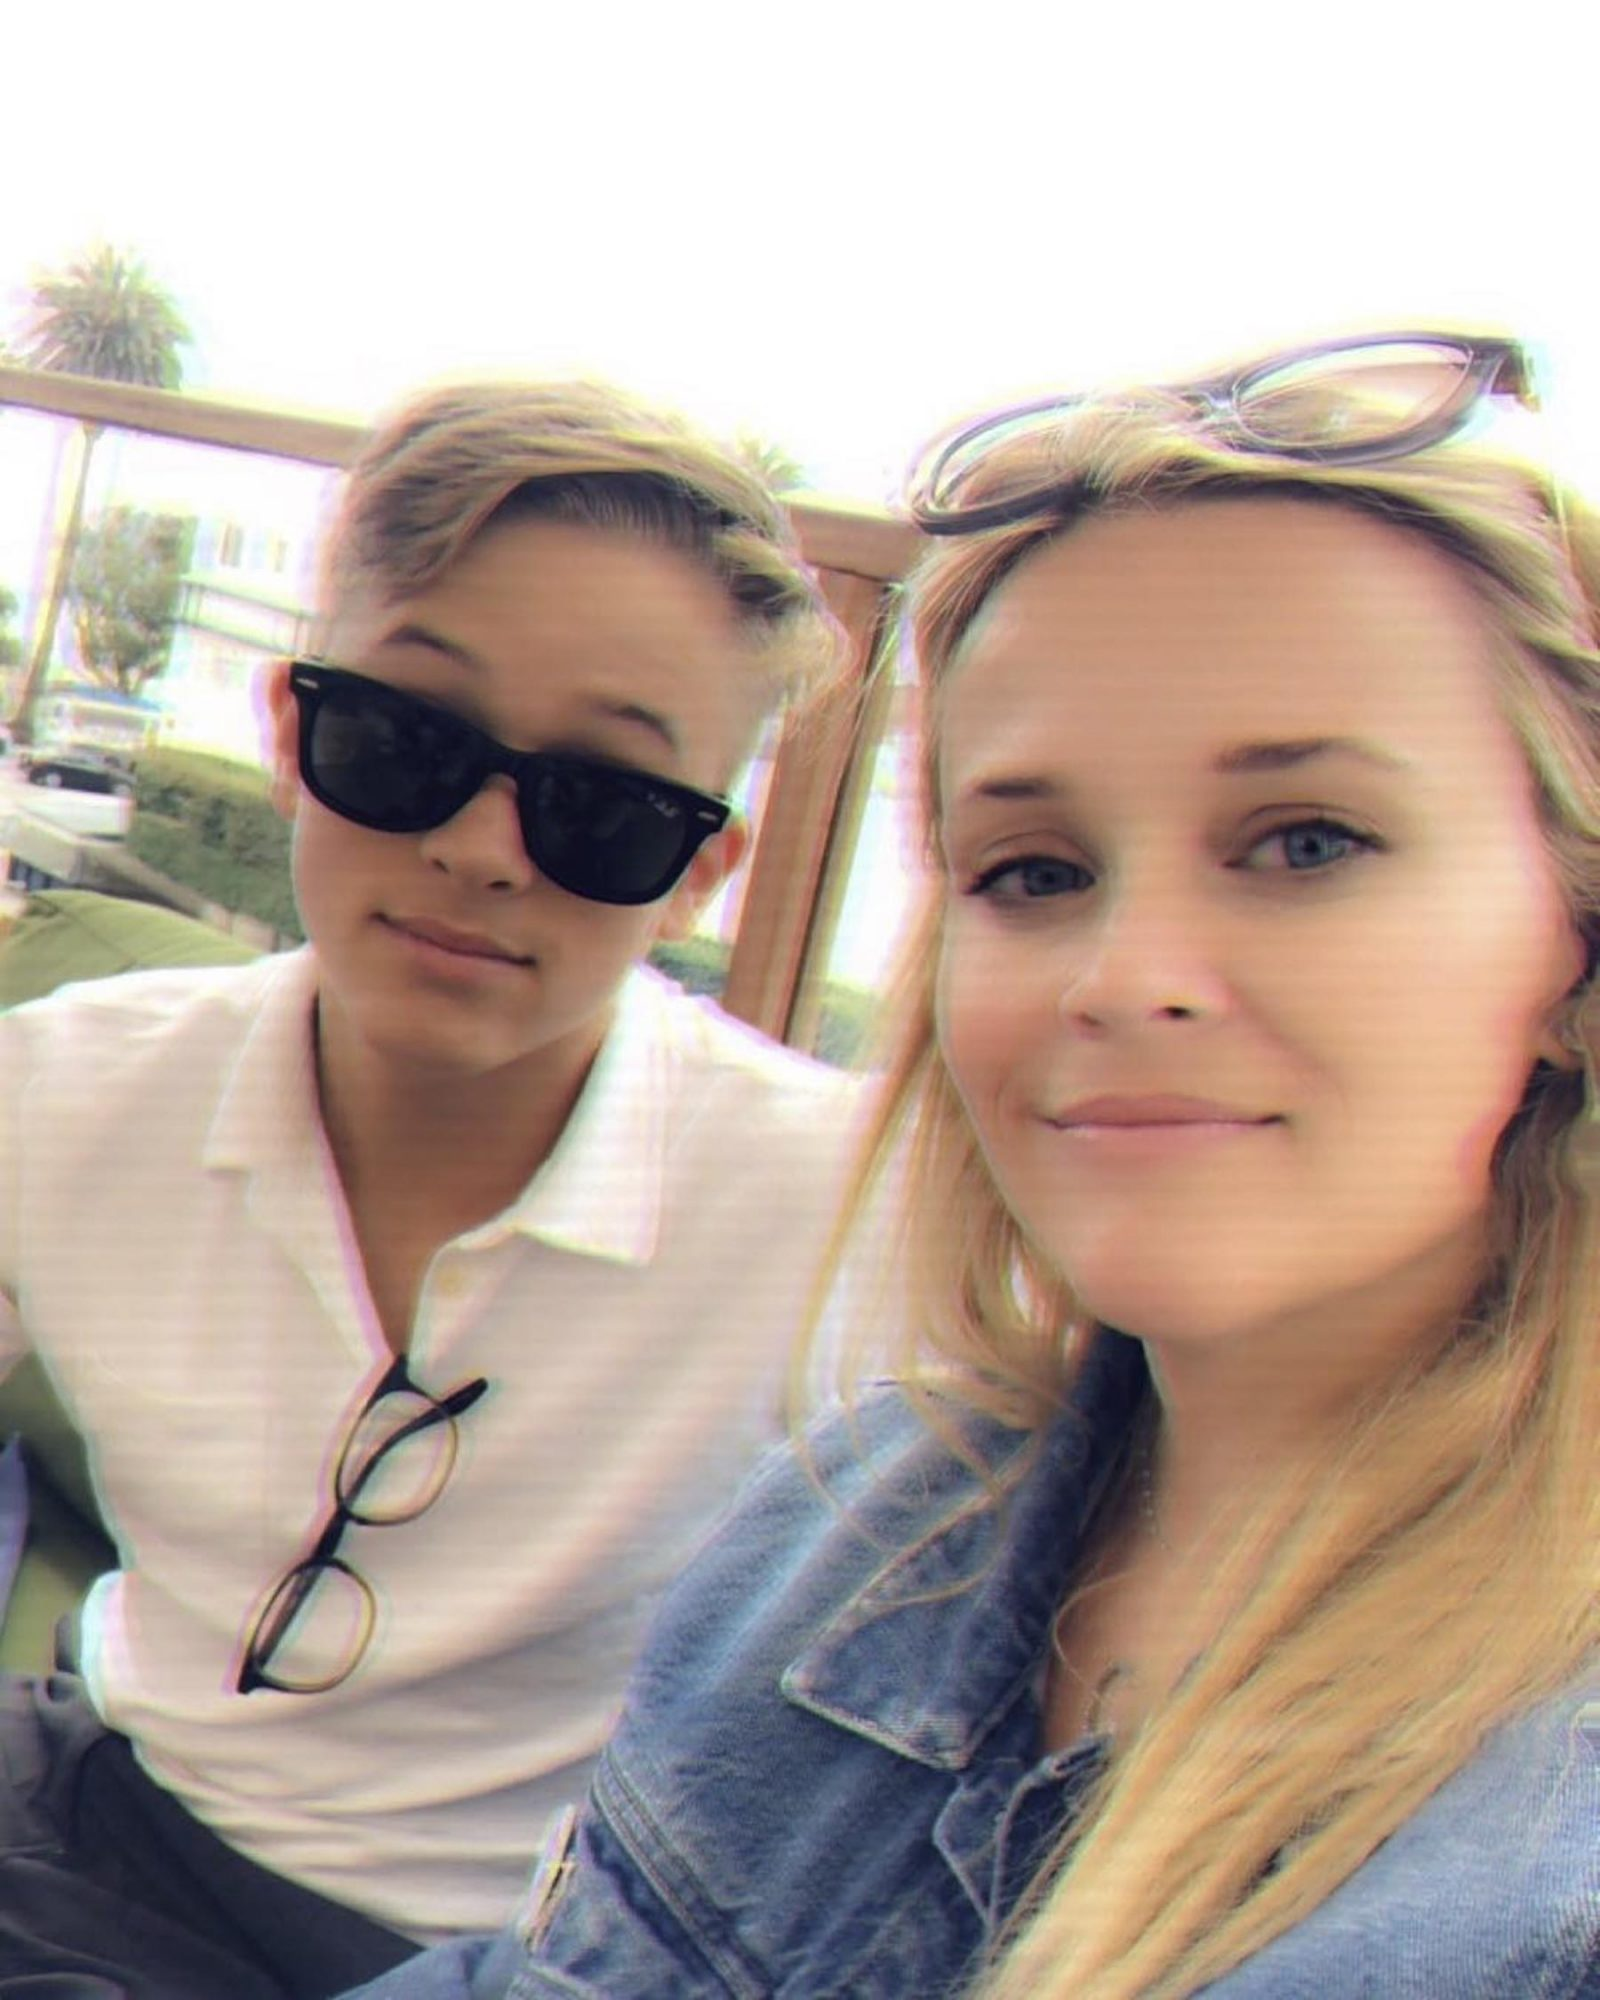 Reese Witherspoon Shares Sweet Selfie with Son Deacon, 14: '#SummerFun'